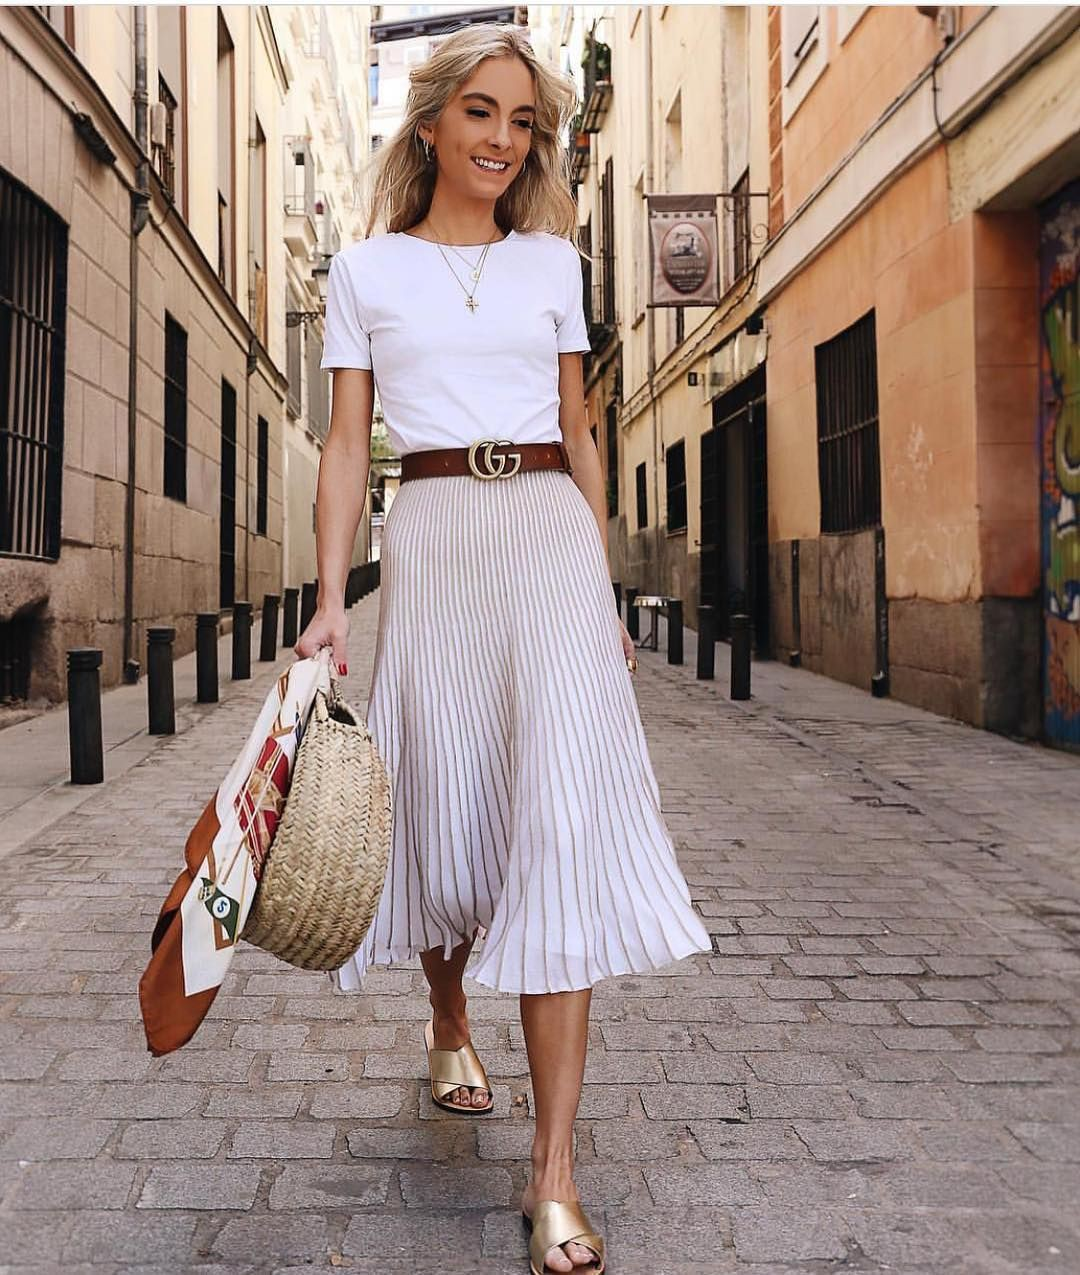 Pleated skirt outfit ideas, cocktail dress, street fashion, party dress, casual wear, crop top